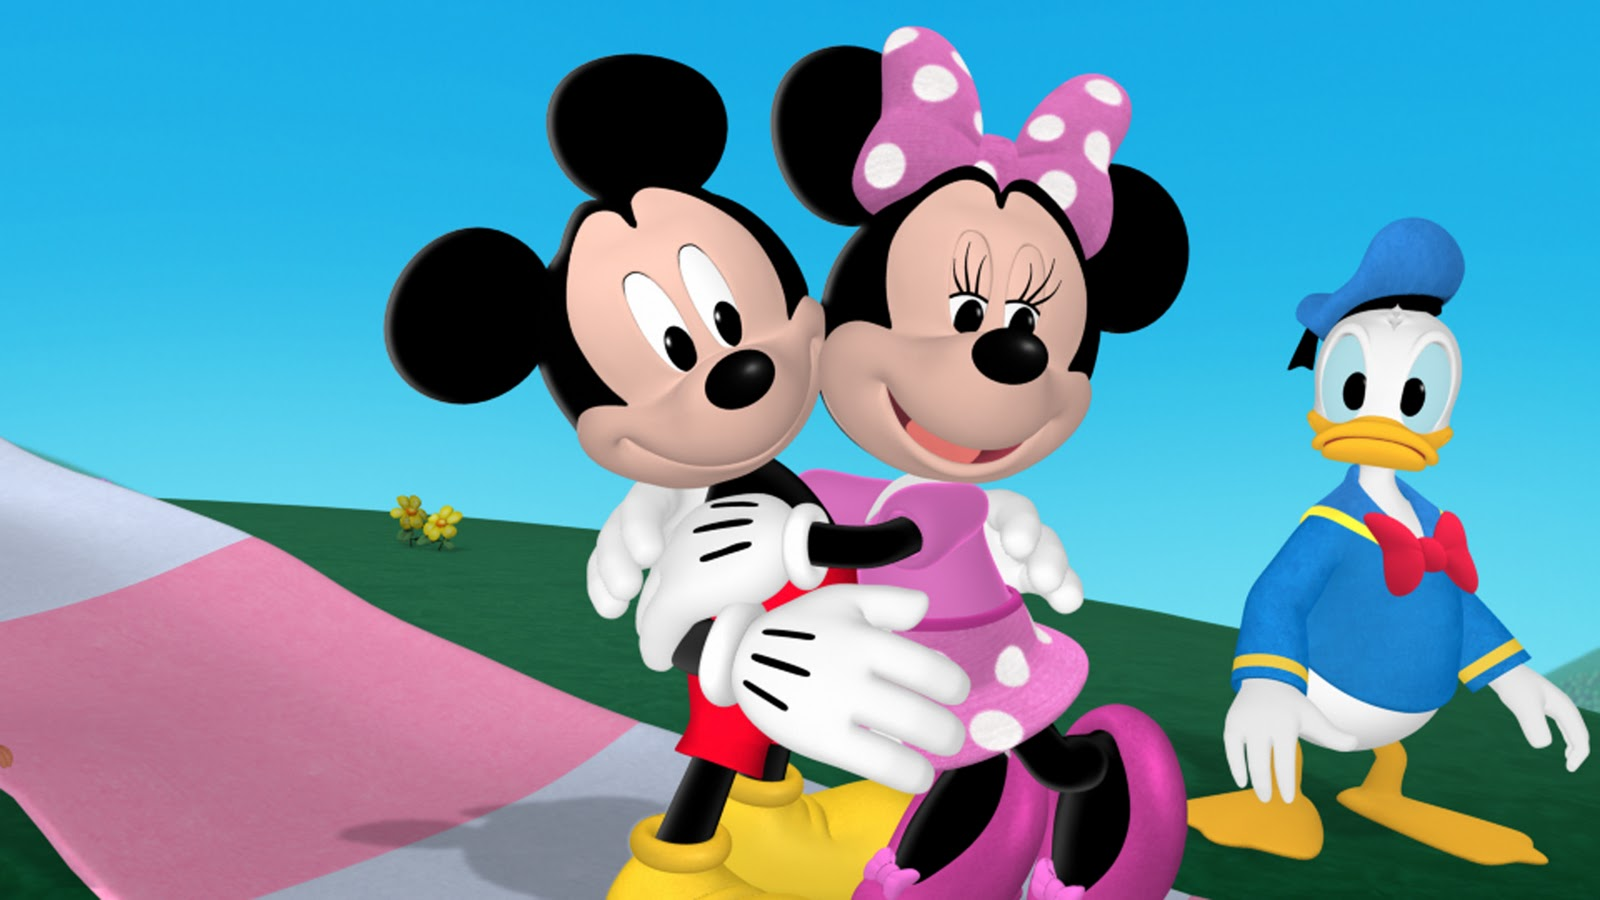 Gangster mickey mouse - Mickey mouse minnie cienta ...